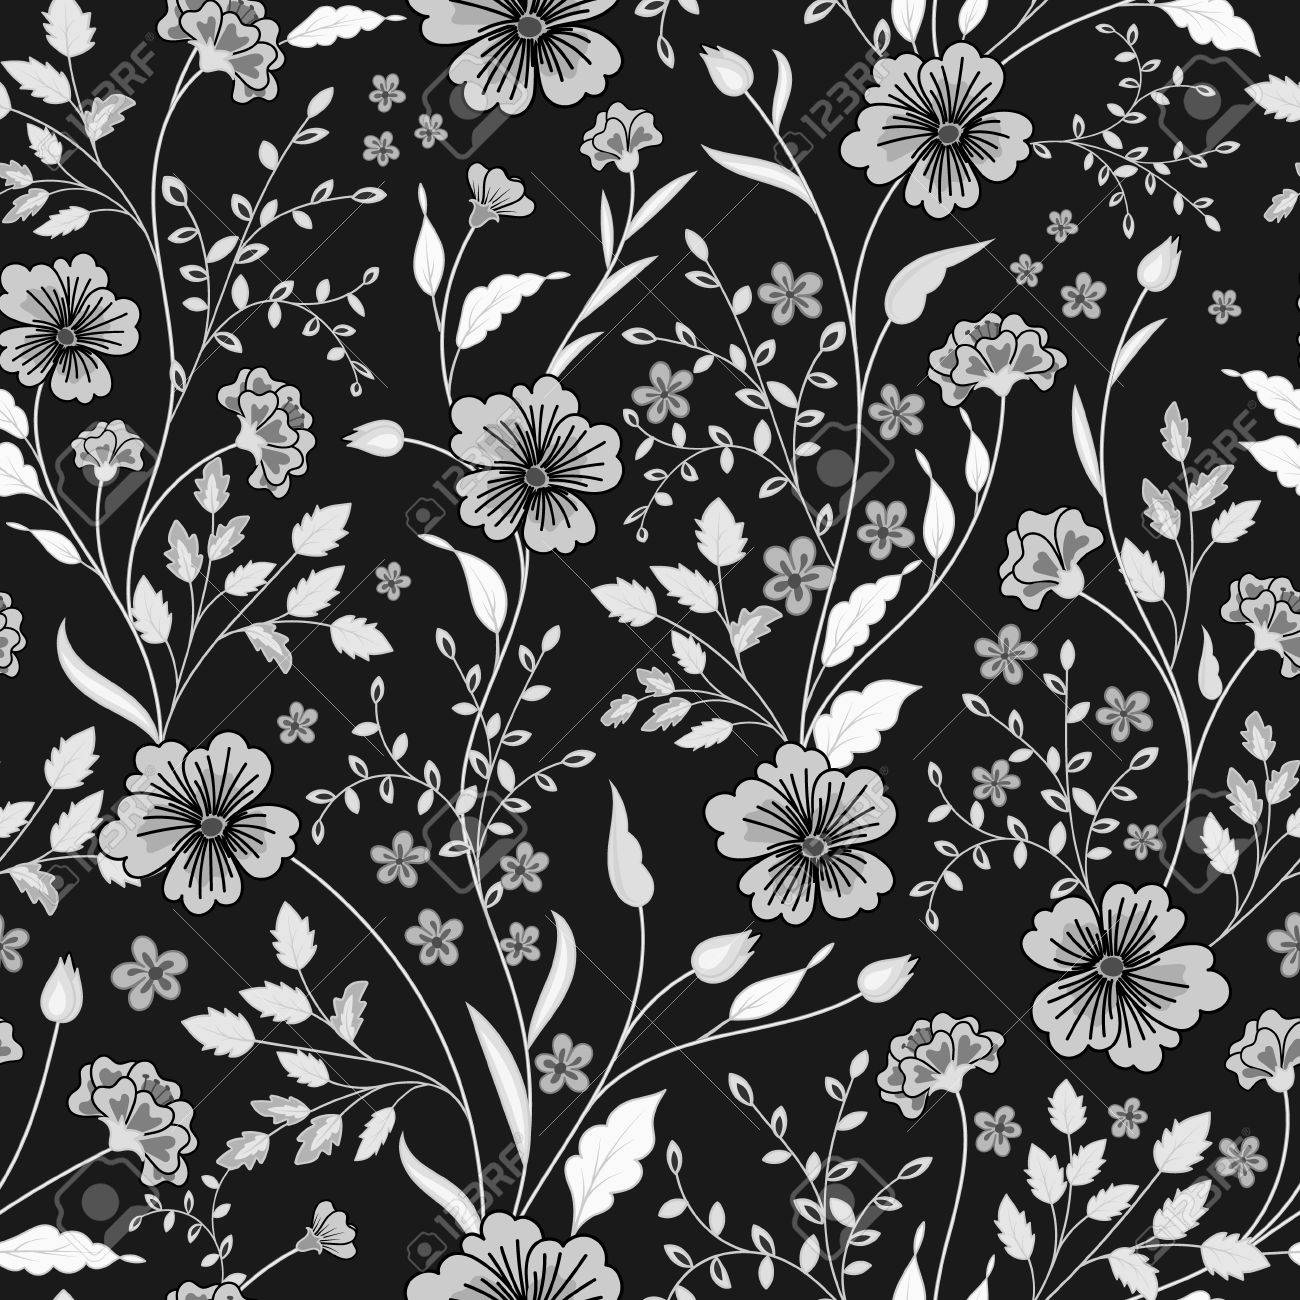 Black And White Pictures Of Flowers To Print